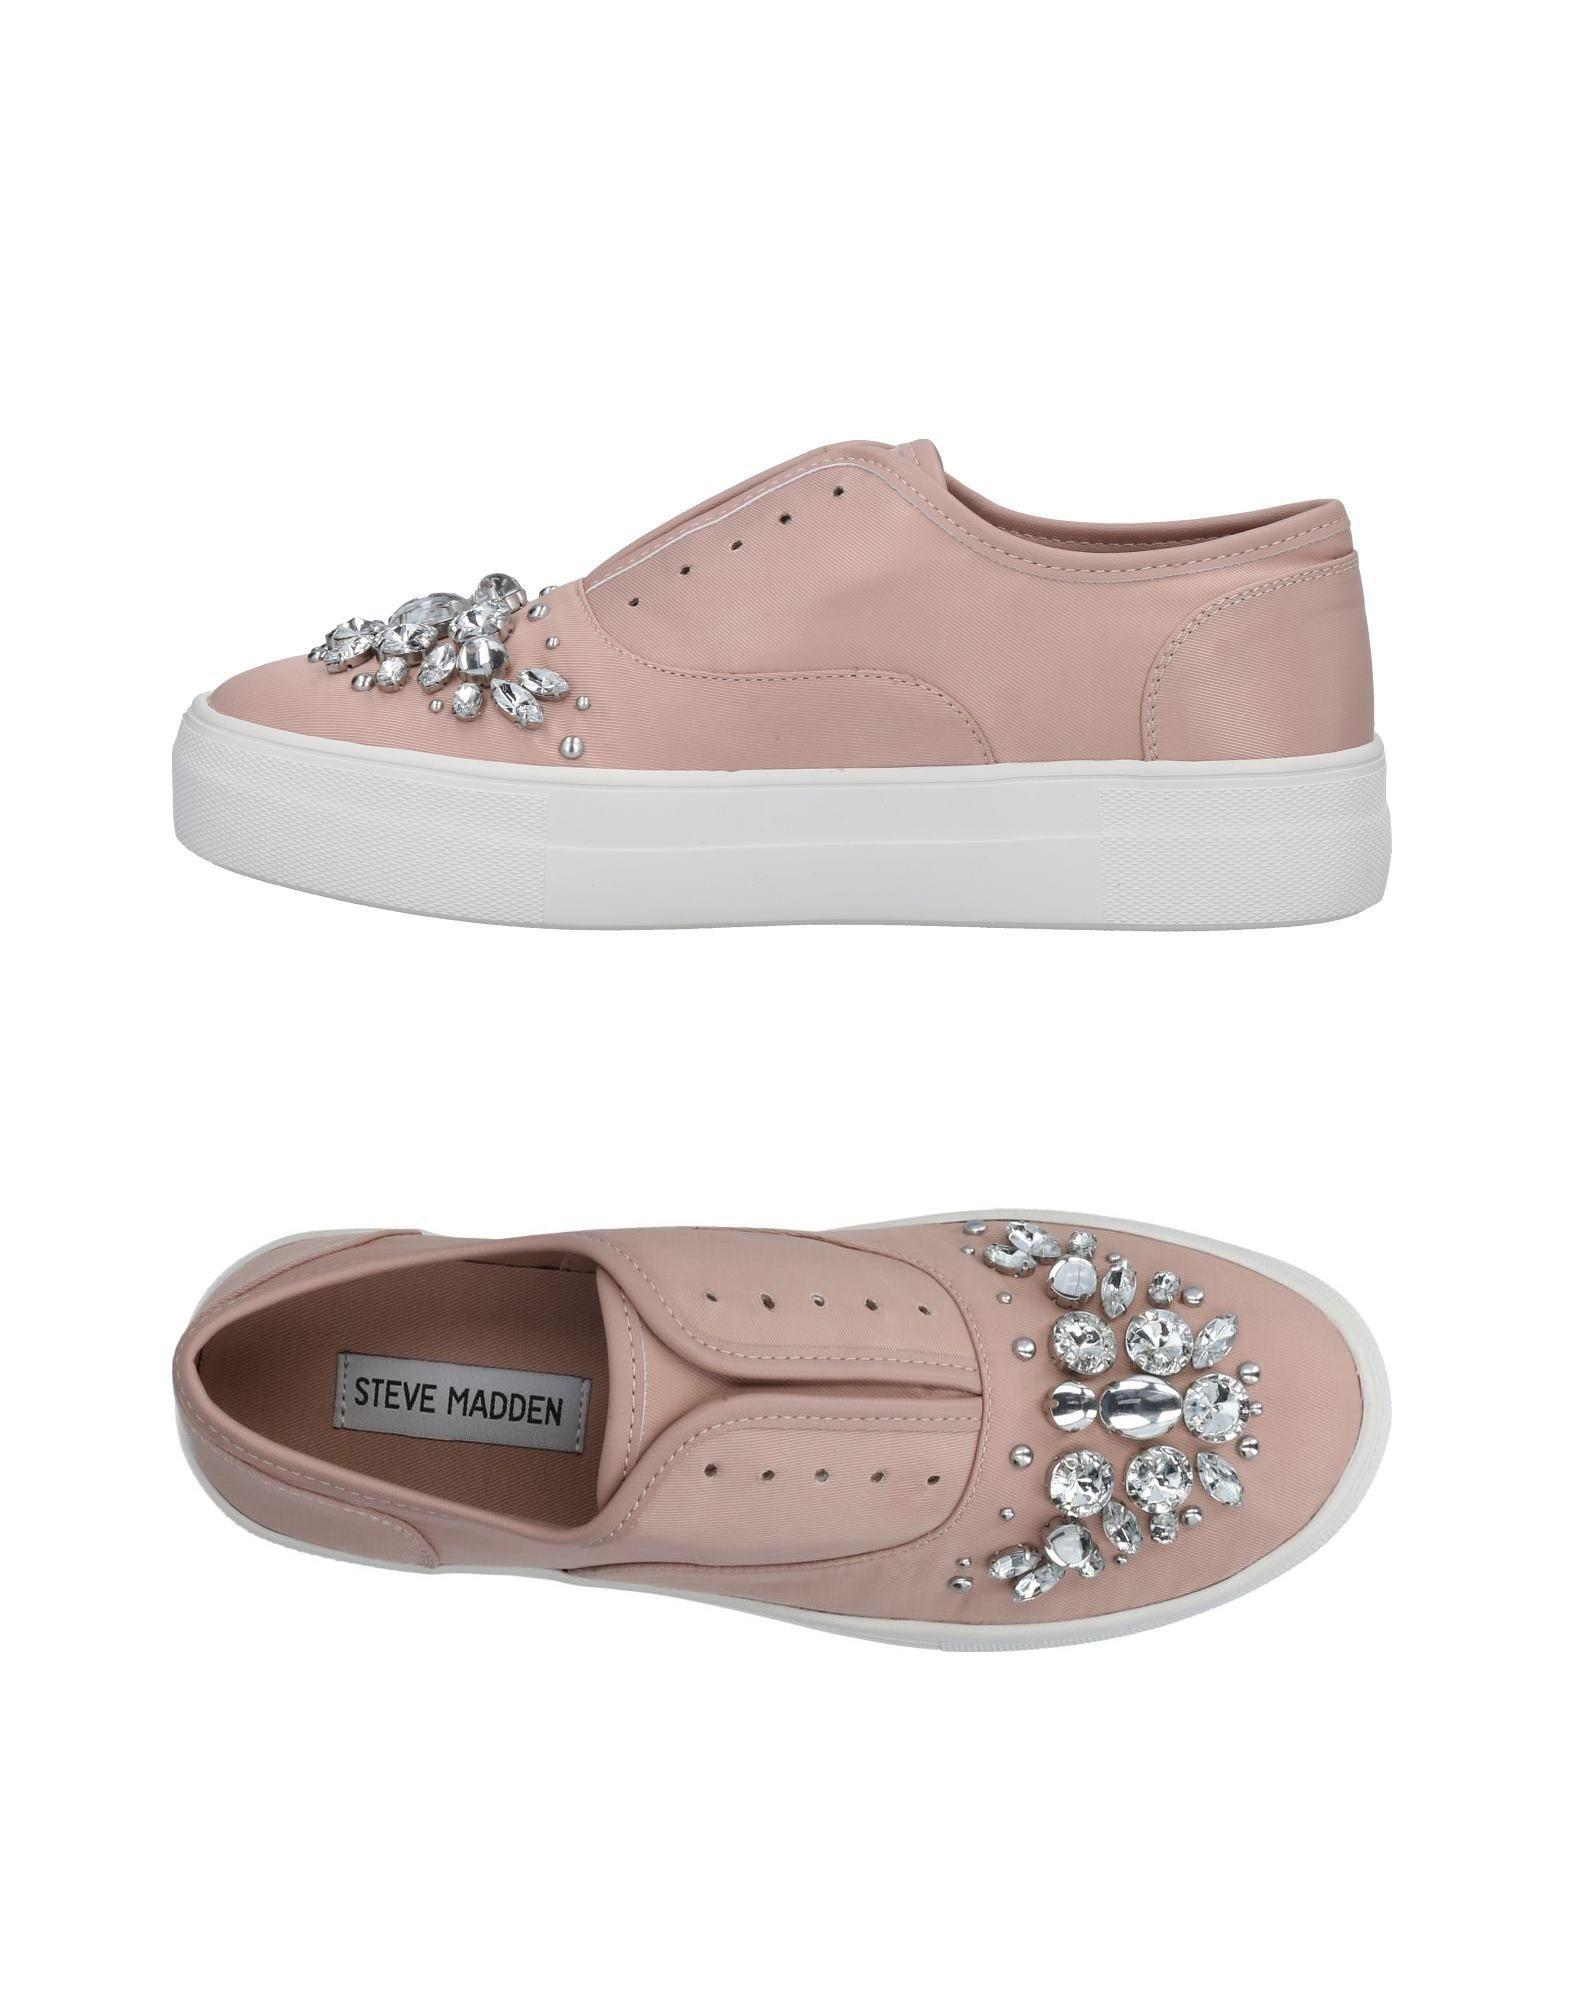 20f91c408a1 Steve Madden Sneakers In Pale Pink